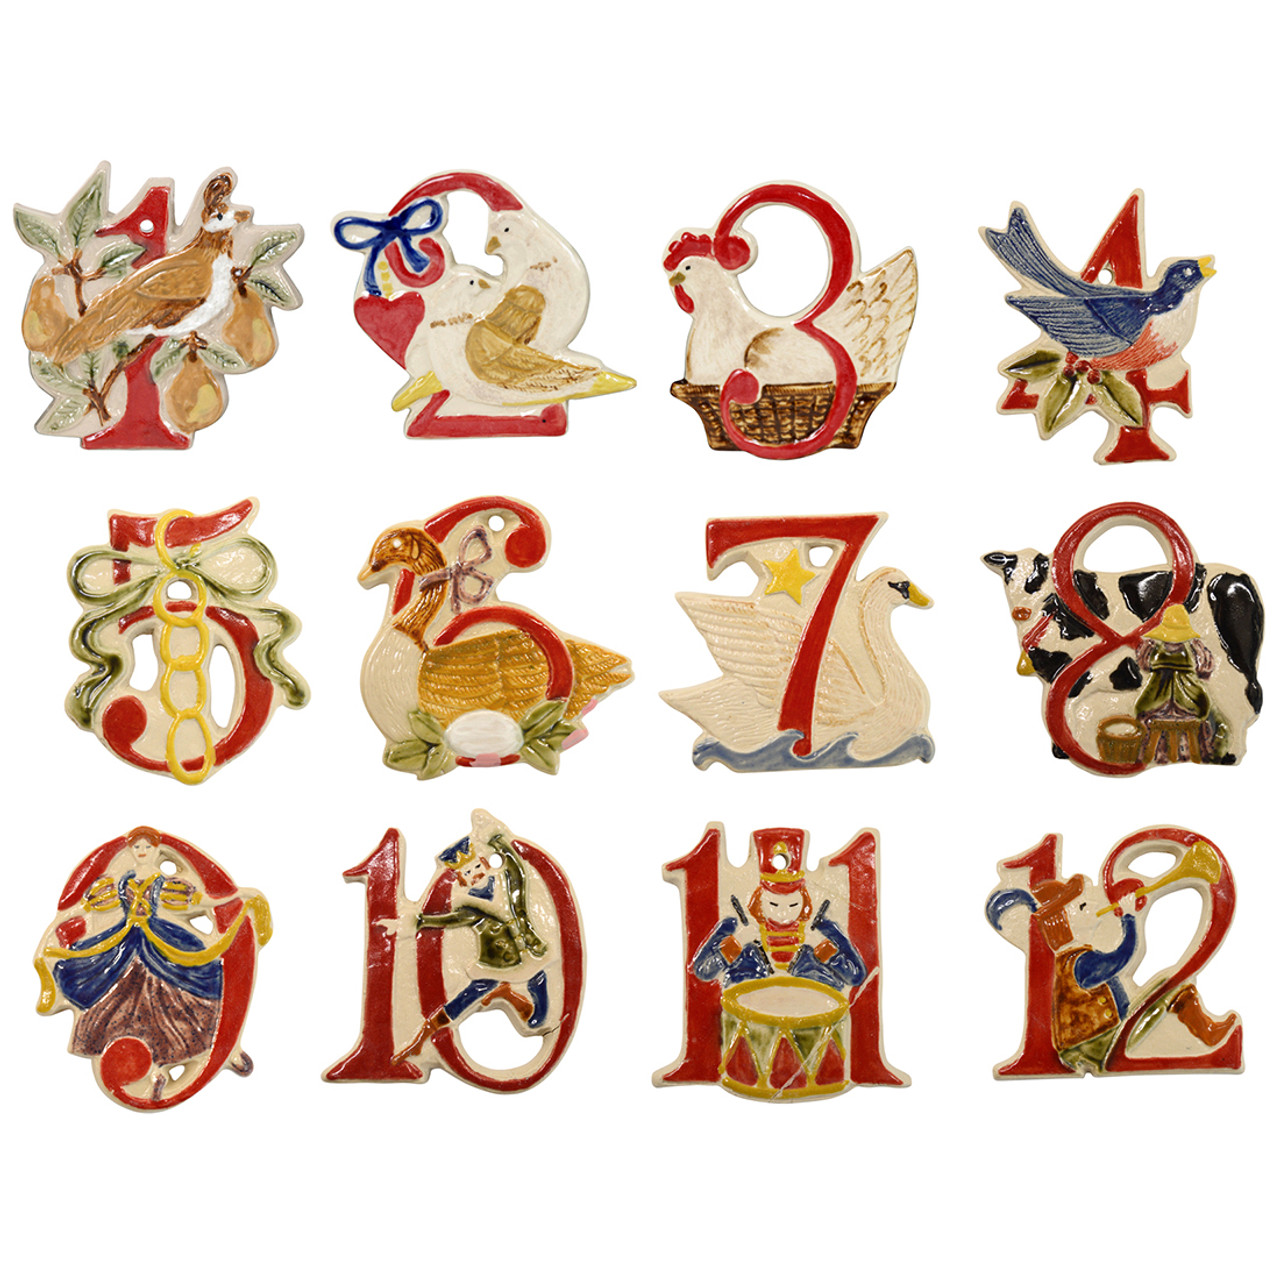 medium resolution of 12 days of christmas stoneware s 2016 release of 12 days of christmas